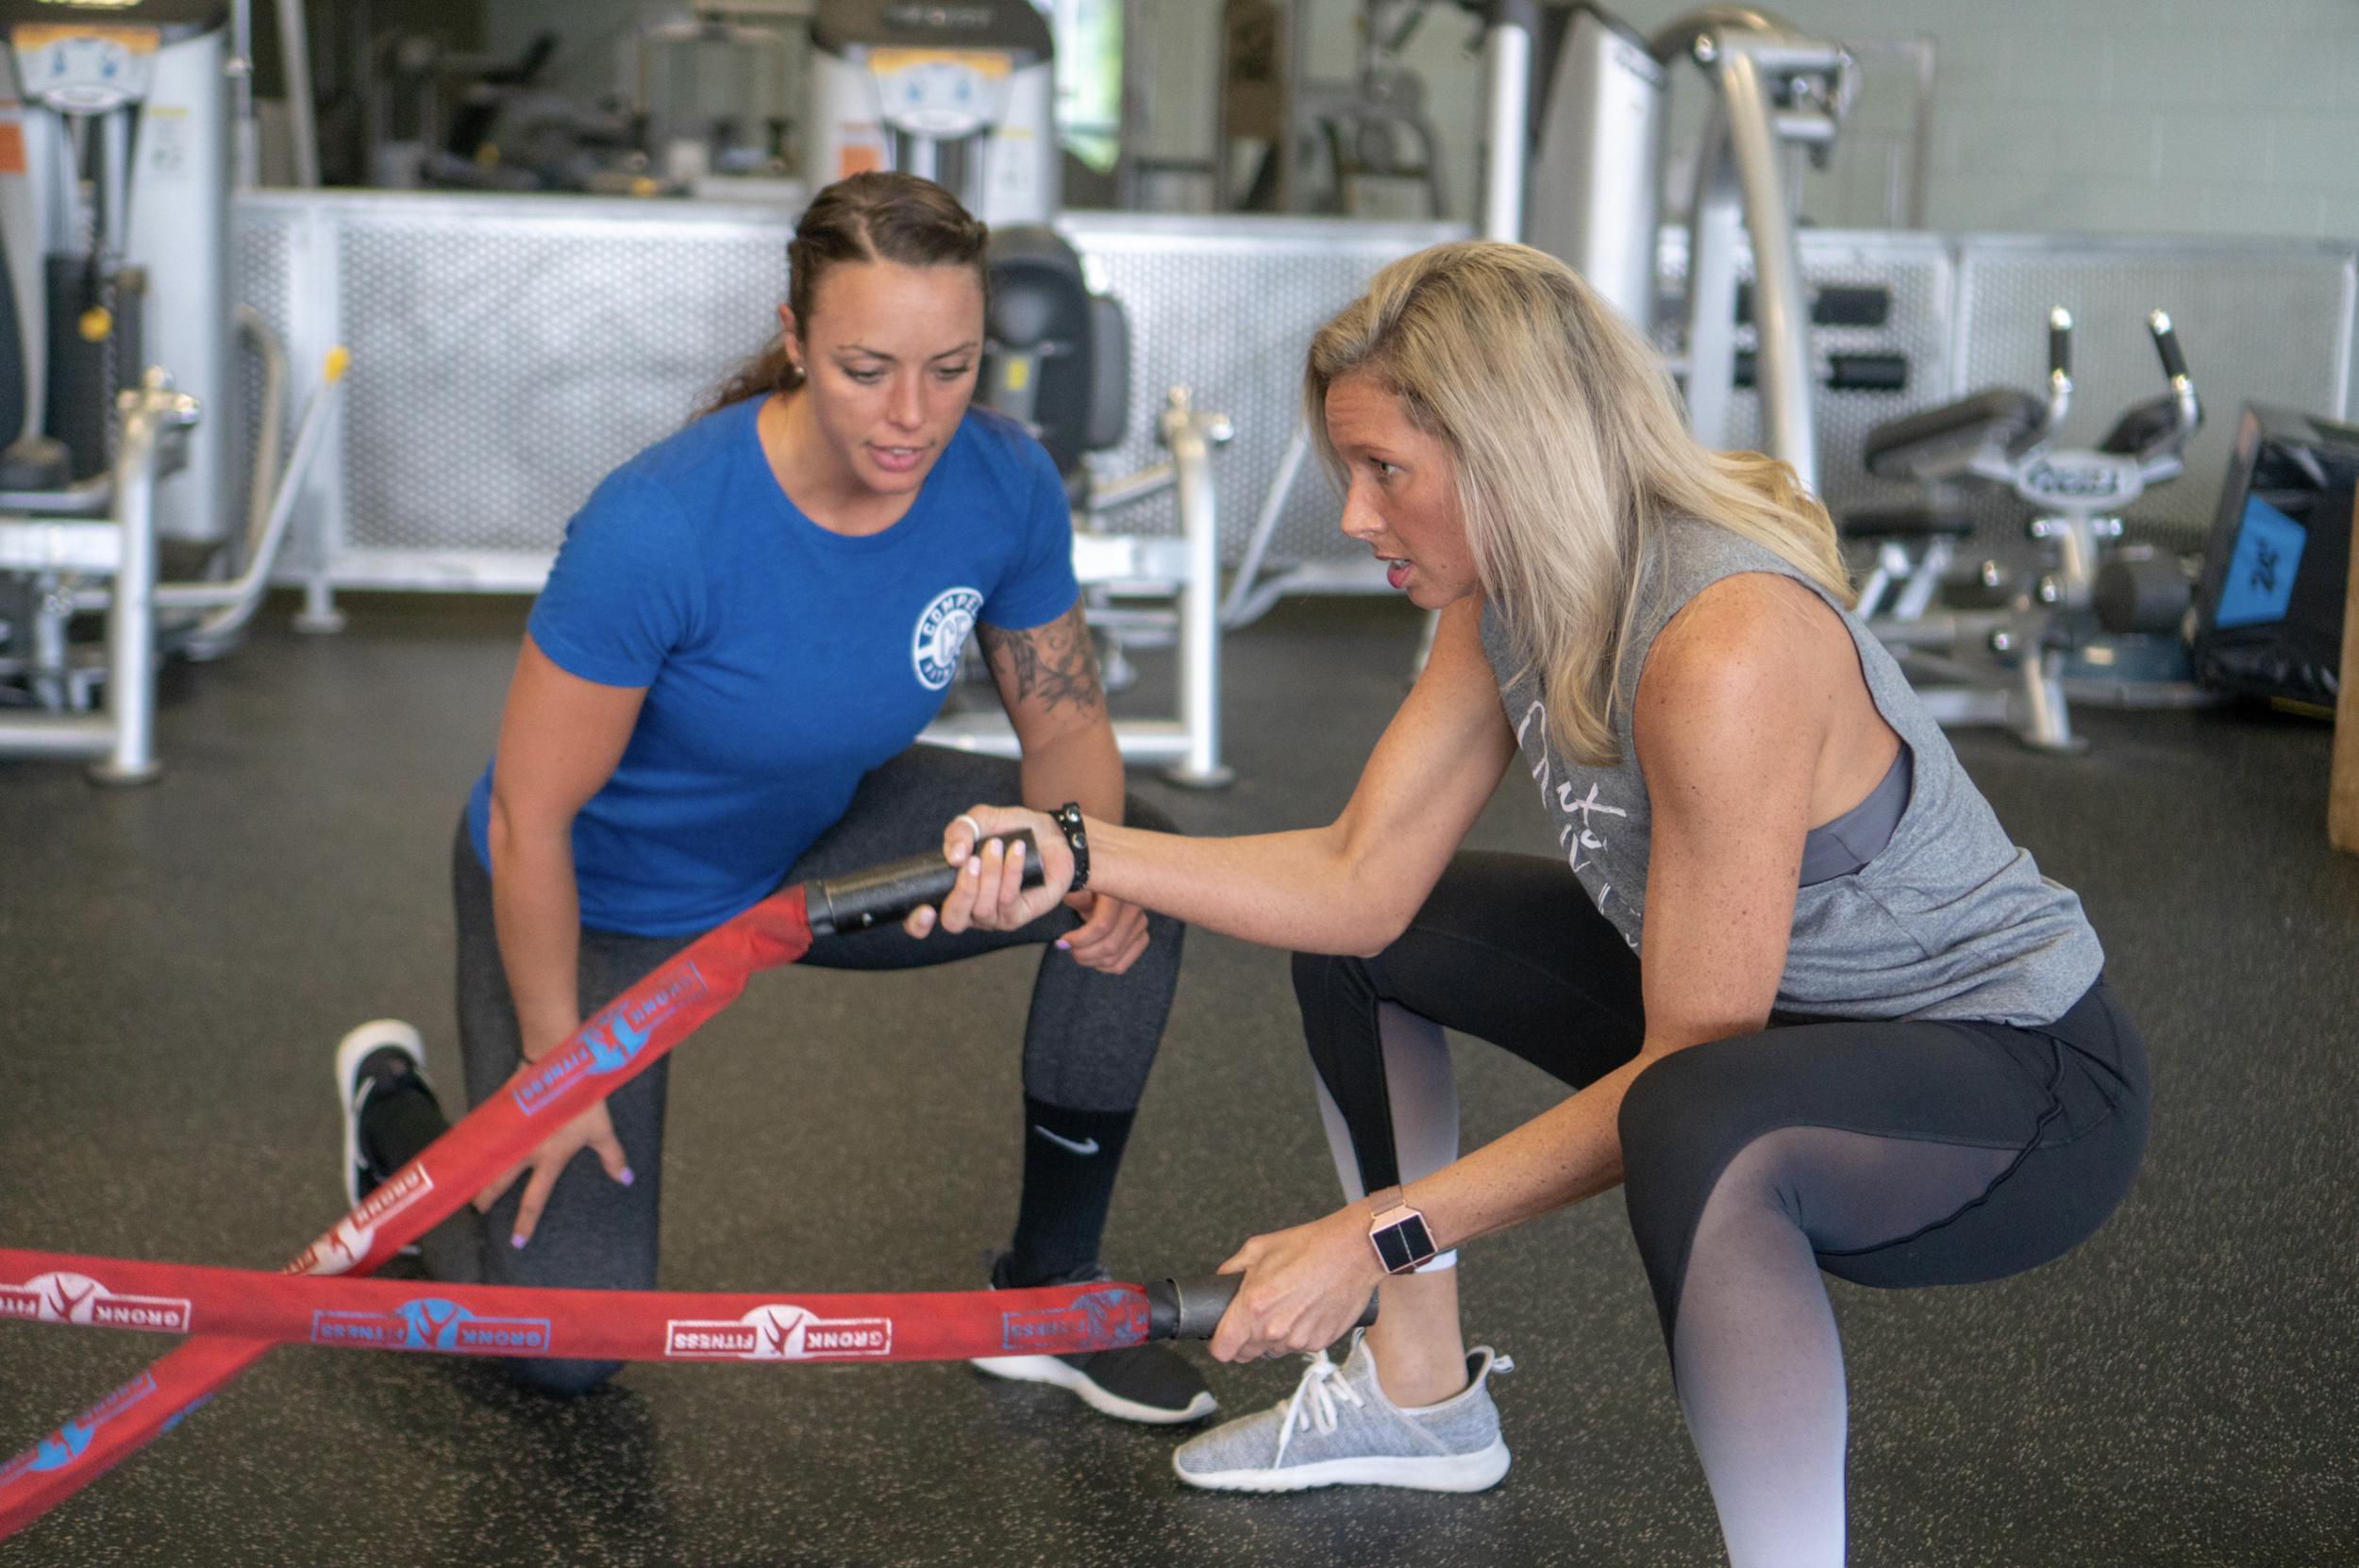 1-ON-1 PERSONAL TRAINING - When what you need to reach your goals is 1-on-1 personal attention, we can give you just that.Group training is great for many people, but when you have elite level athletic goals, have certain limitations, or just want the extra hands on attention sometimes 1-on-1 is the best way. Our 1-on-1 personal training sessions allow our certified trainers to give you the undivided attention you need to succeed and accomplish what you have set out to do.*1-on-1 personal training is built for:Anyone with advanced sport specific athletic goals such as:Body builders, Student athletes looking for agility or speed training, People with certain physical limitations who want added customized attention, Anyone who really values the 1-on-1 attentionTo learn more about our programs, please contact us directly.Or, for free motivational and educational fitness Join Our FREE Compel Fit Club!*Individual Results May Vary